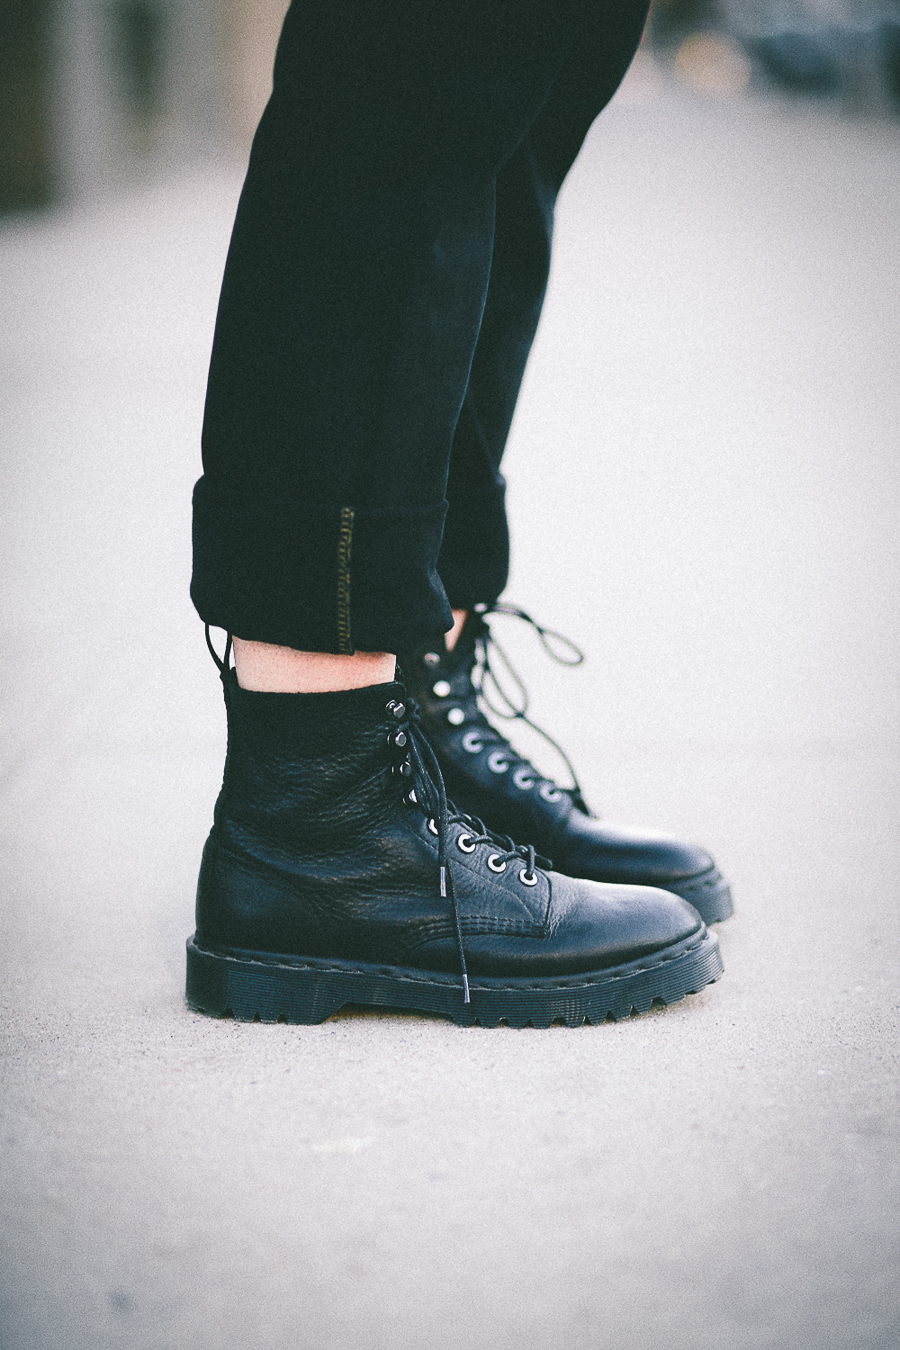 Le Happy wearing Dr Martens